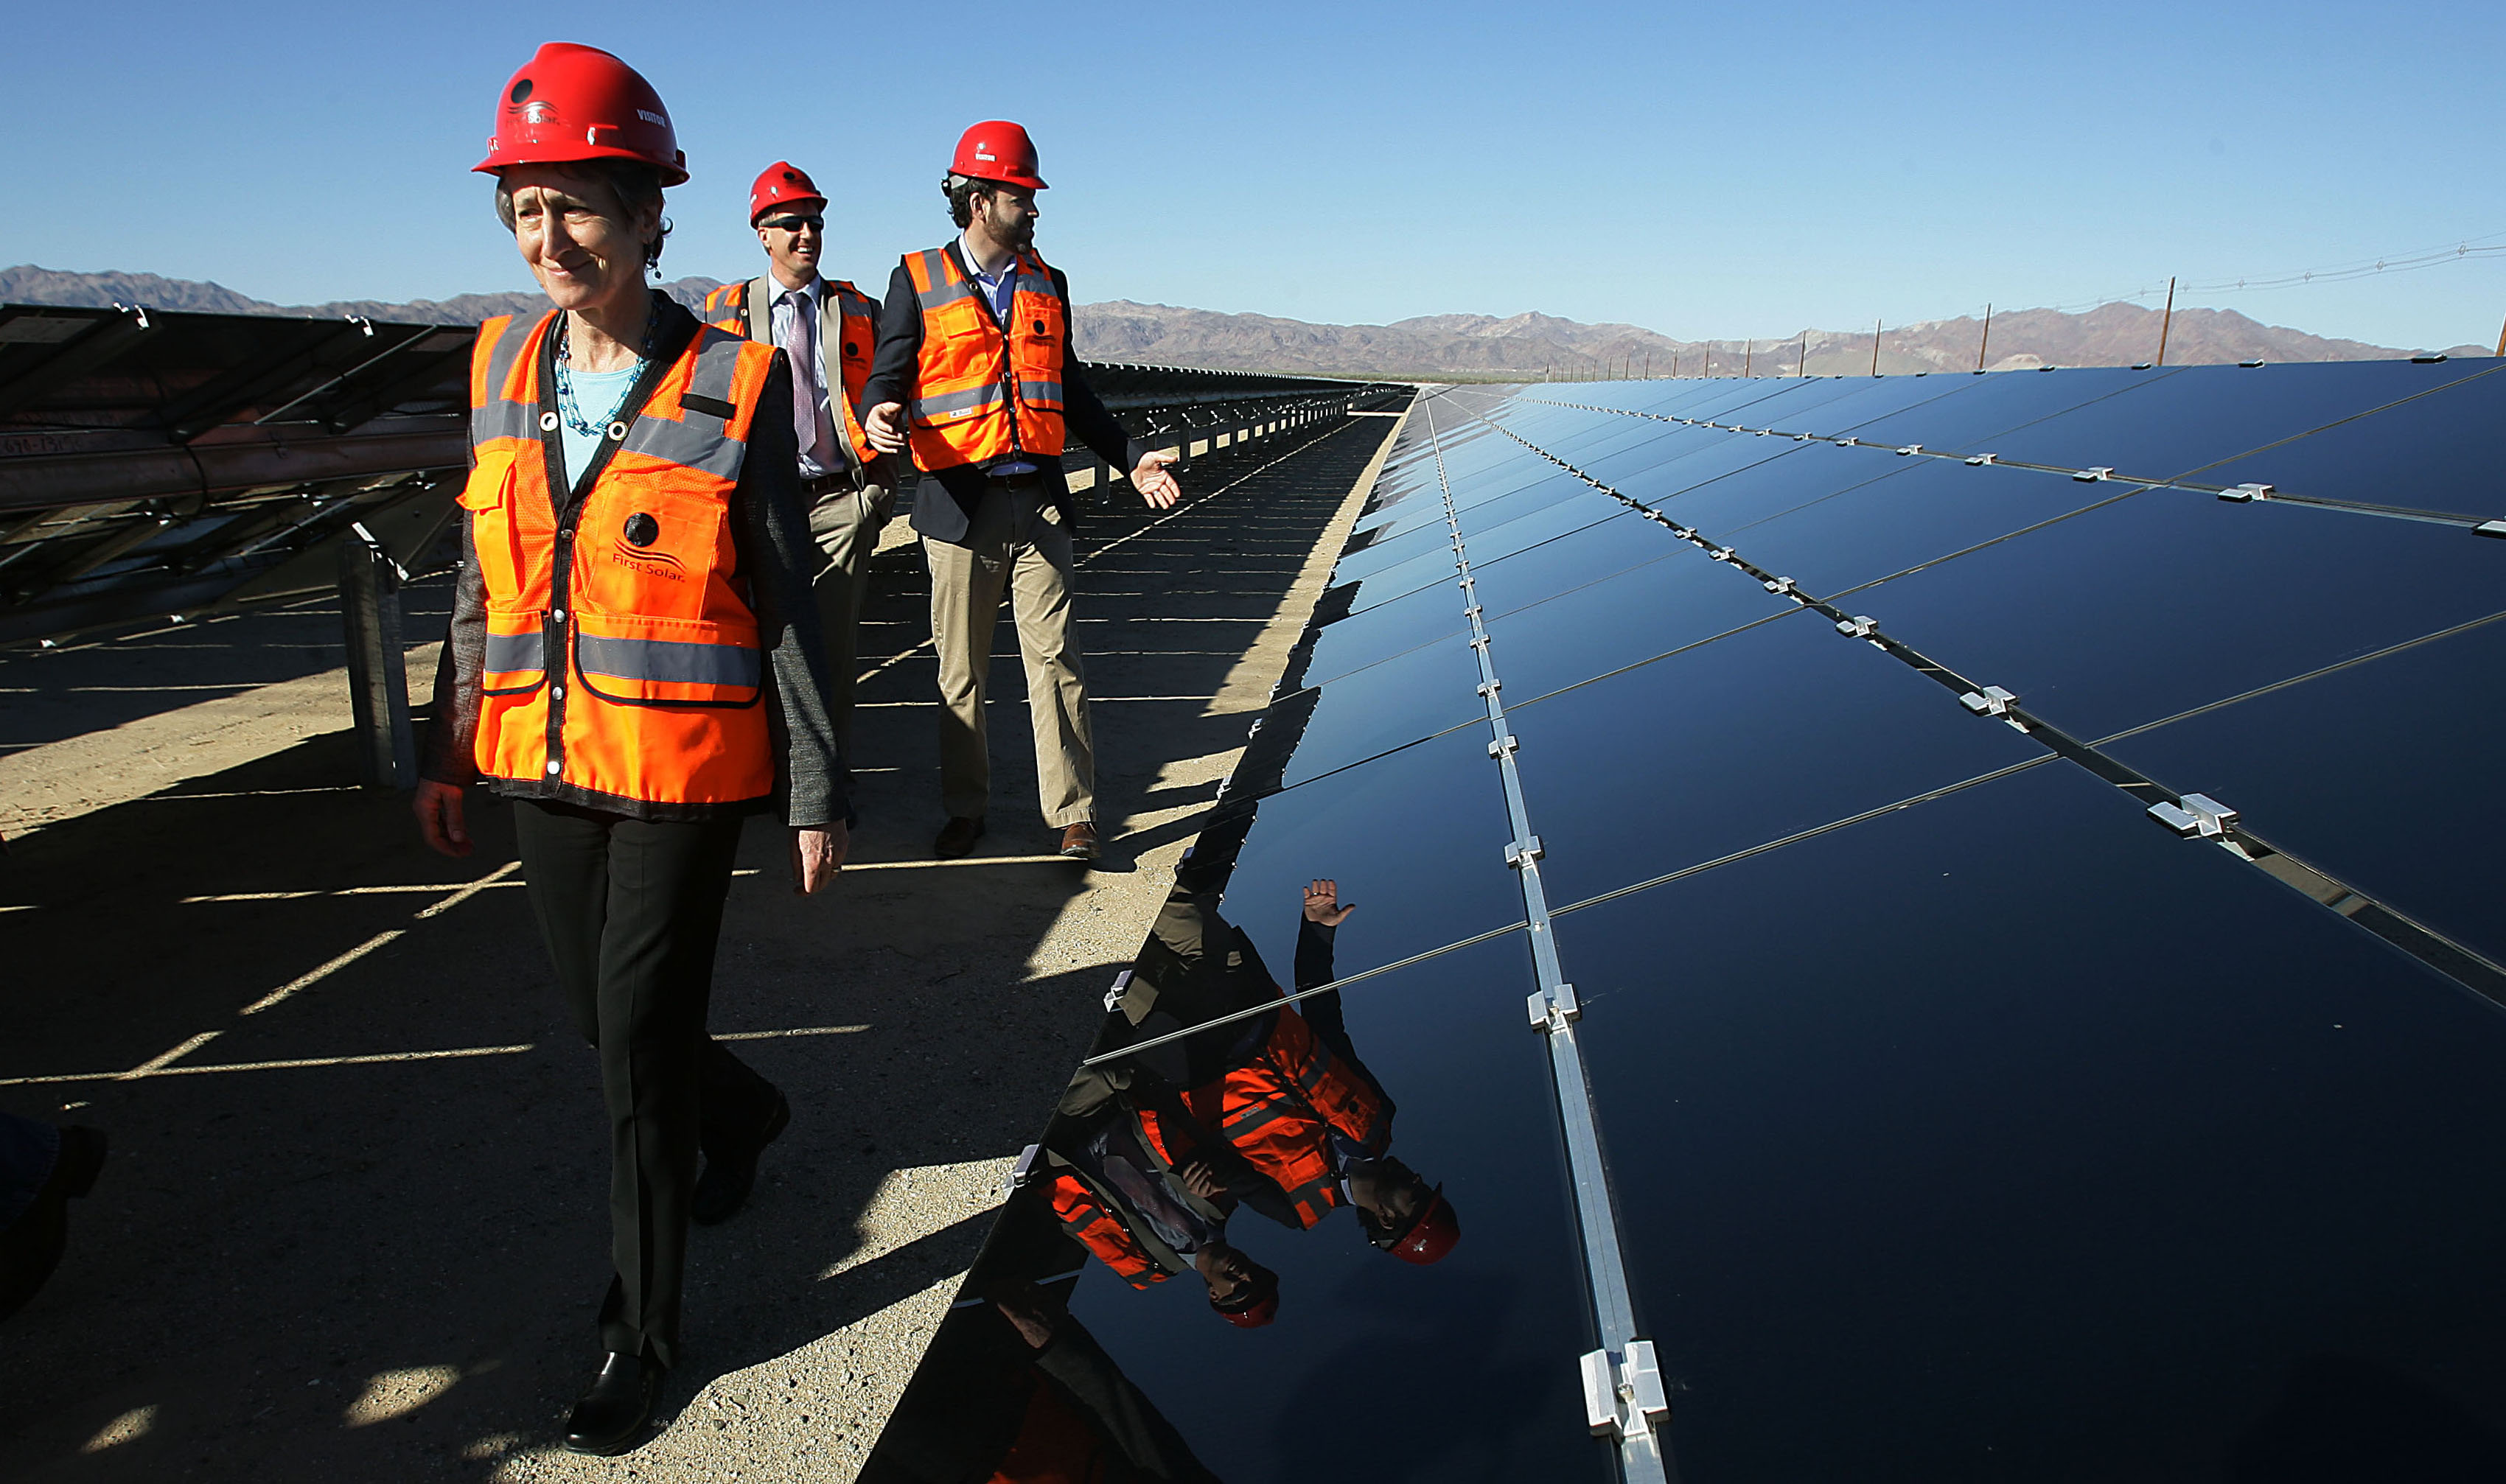 U.S. Secretary of Interior Sally Jewell, left, tours the plant during the power-on ceremony at Desert Sunlight Solar Farm in Desert Center, Calif., on Feb. 9, 2015